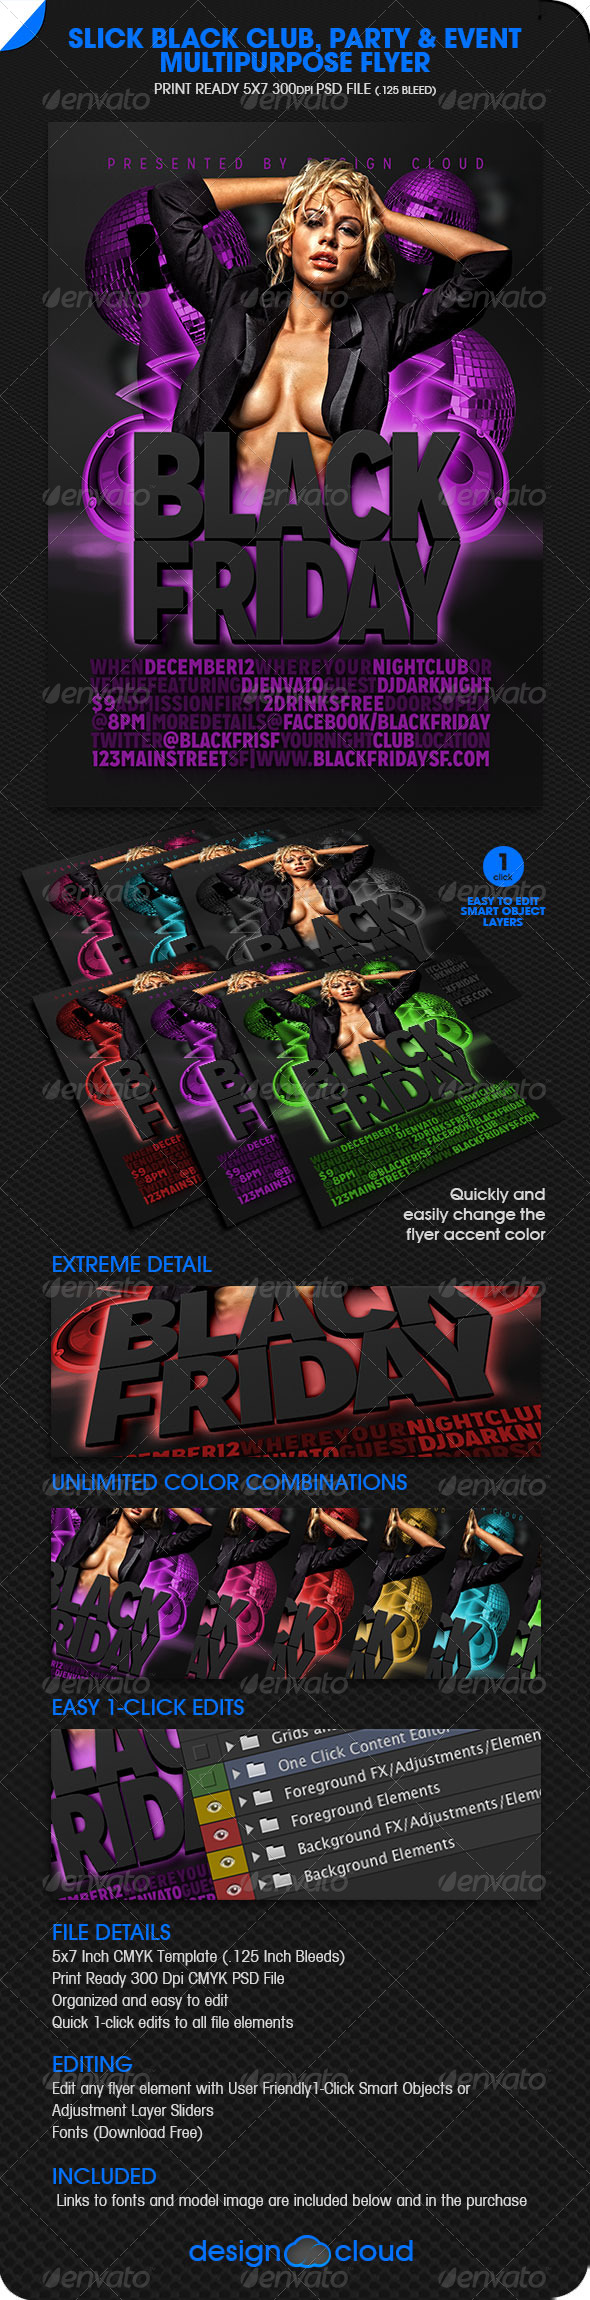 GraphicRiver Slick Black Club Party & Event Multipurpose Flyer 6253399